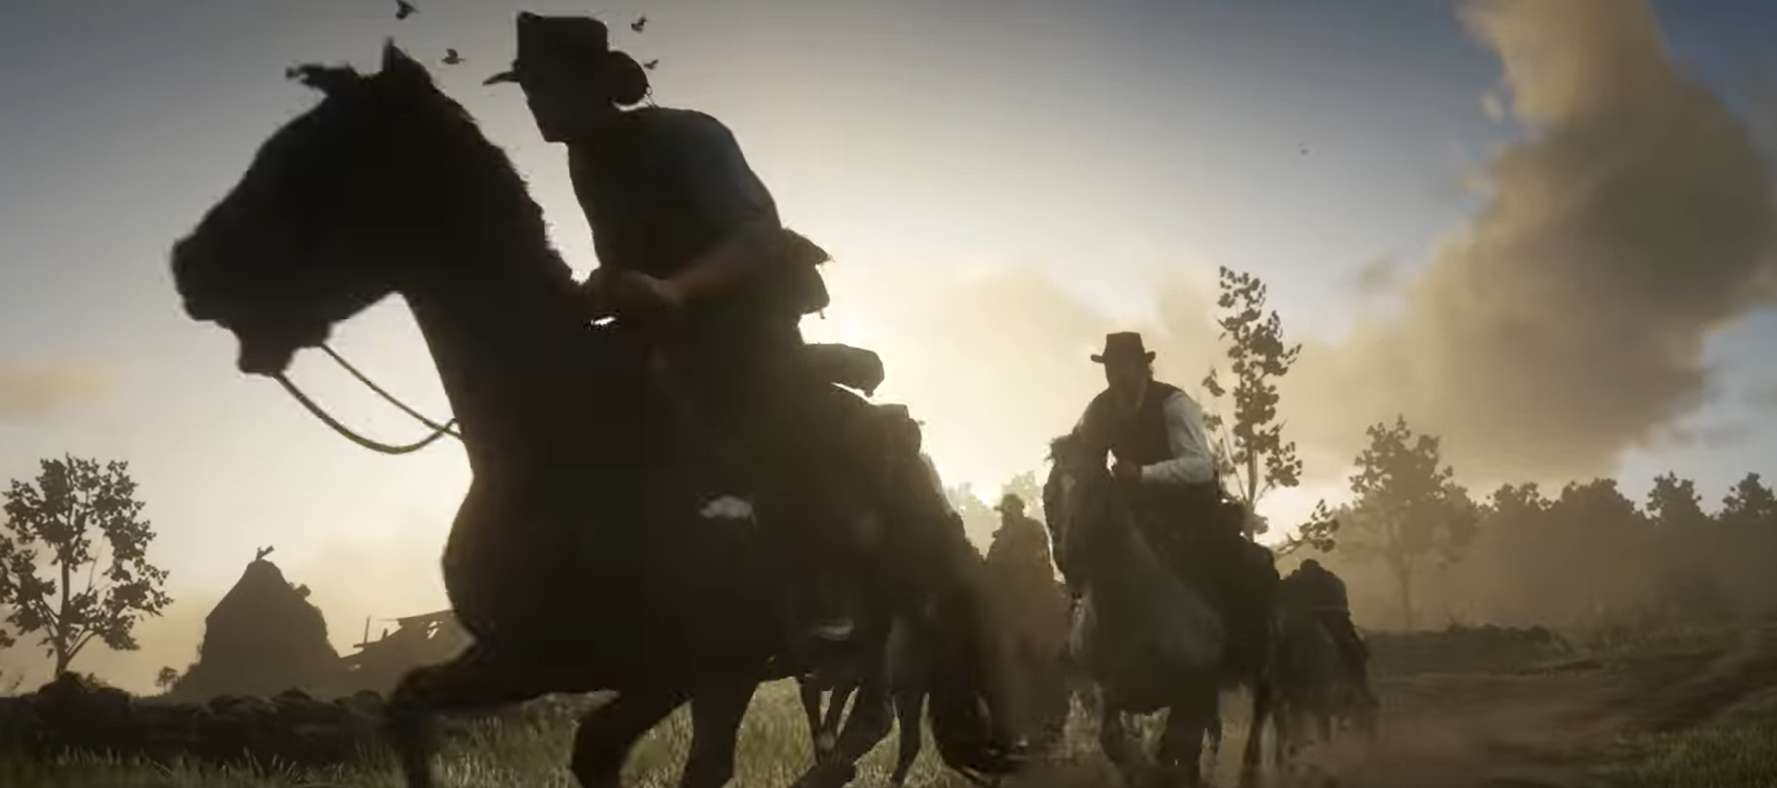 Photographers Are Using Their Photo Skills In Red Dead Redemption 2 While Stuck In Quarantine